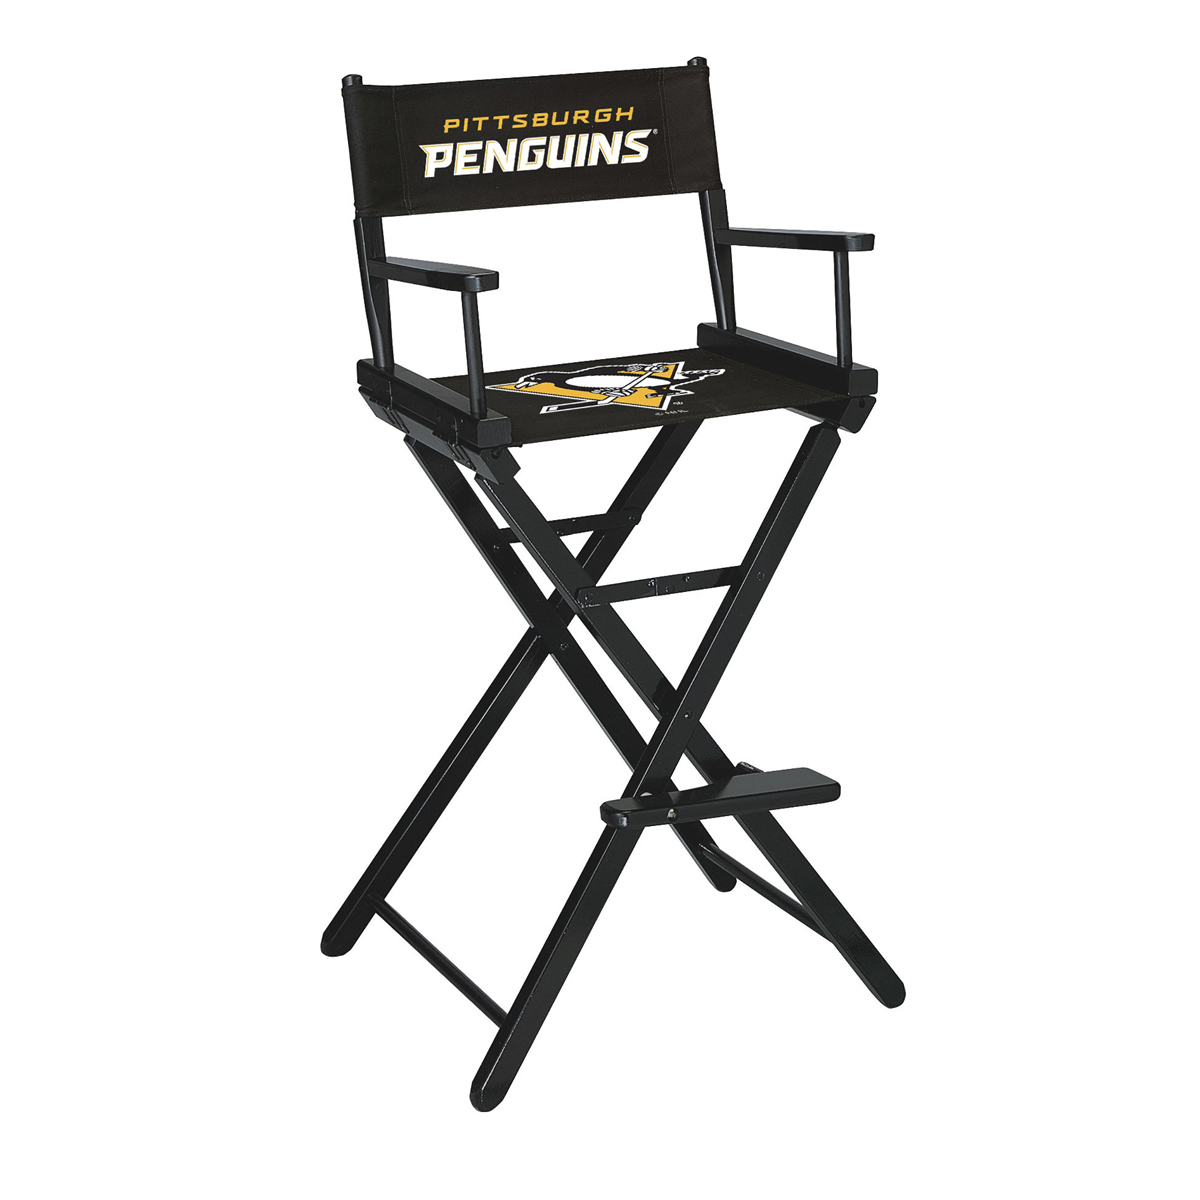 PITTSBURGH PENGUINS® BAR HEIGHT DIRECTORS CHAIR